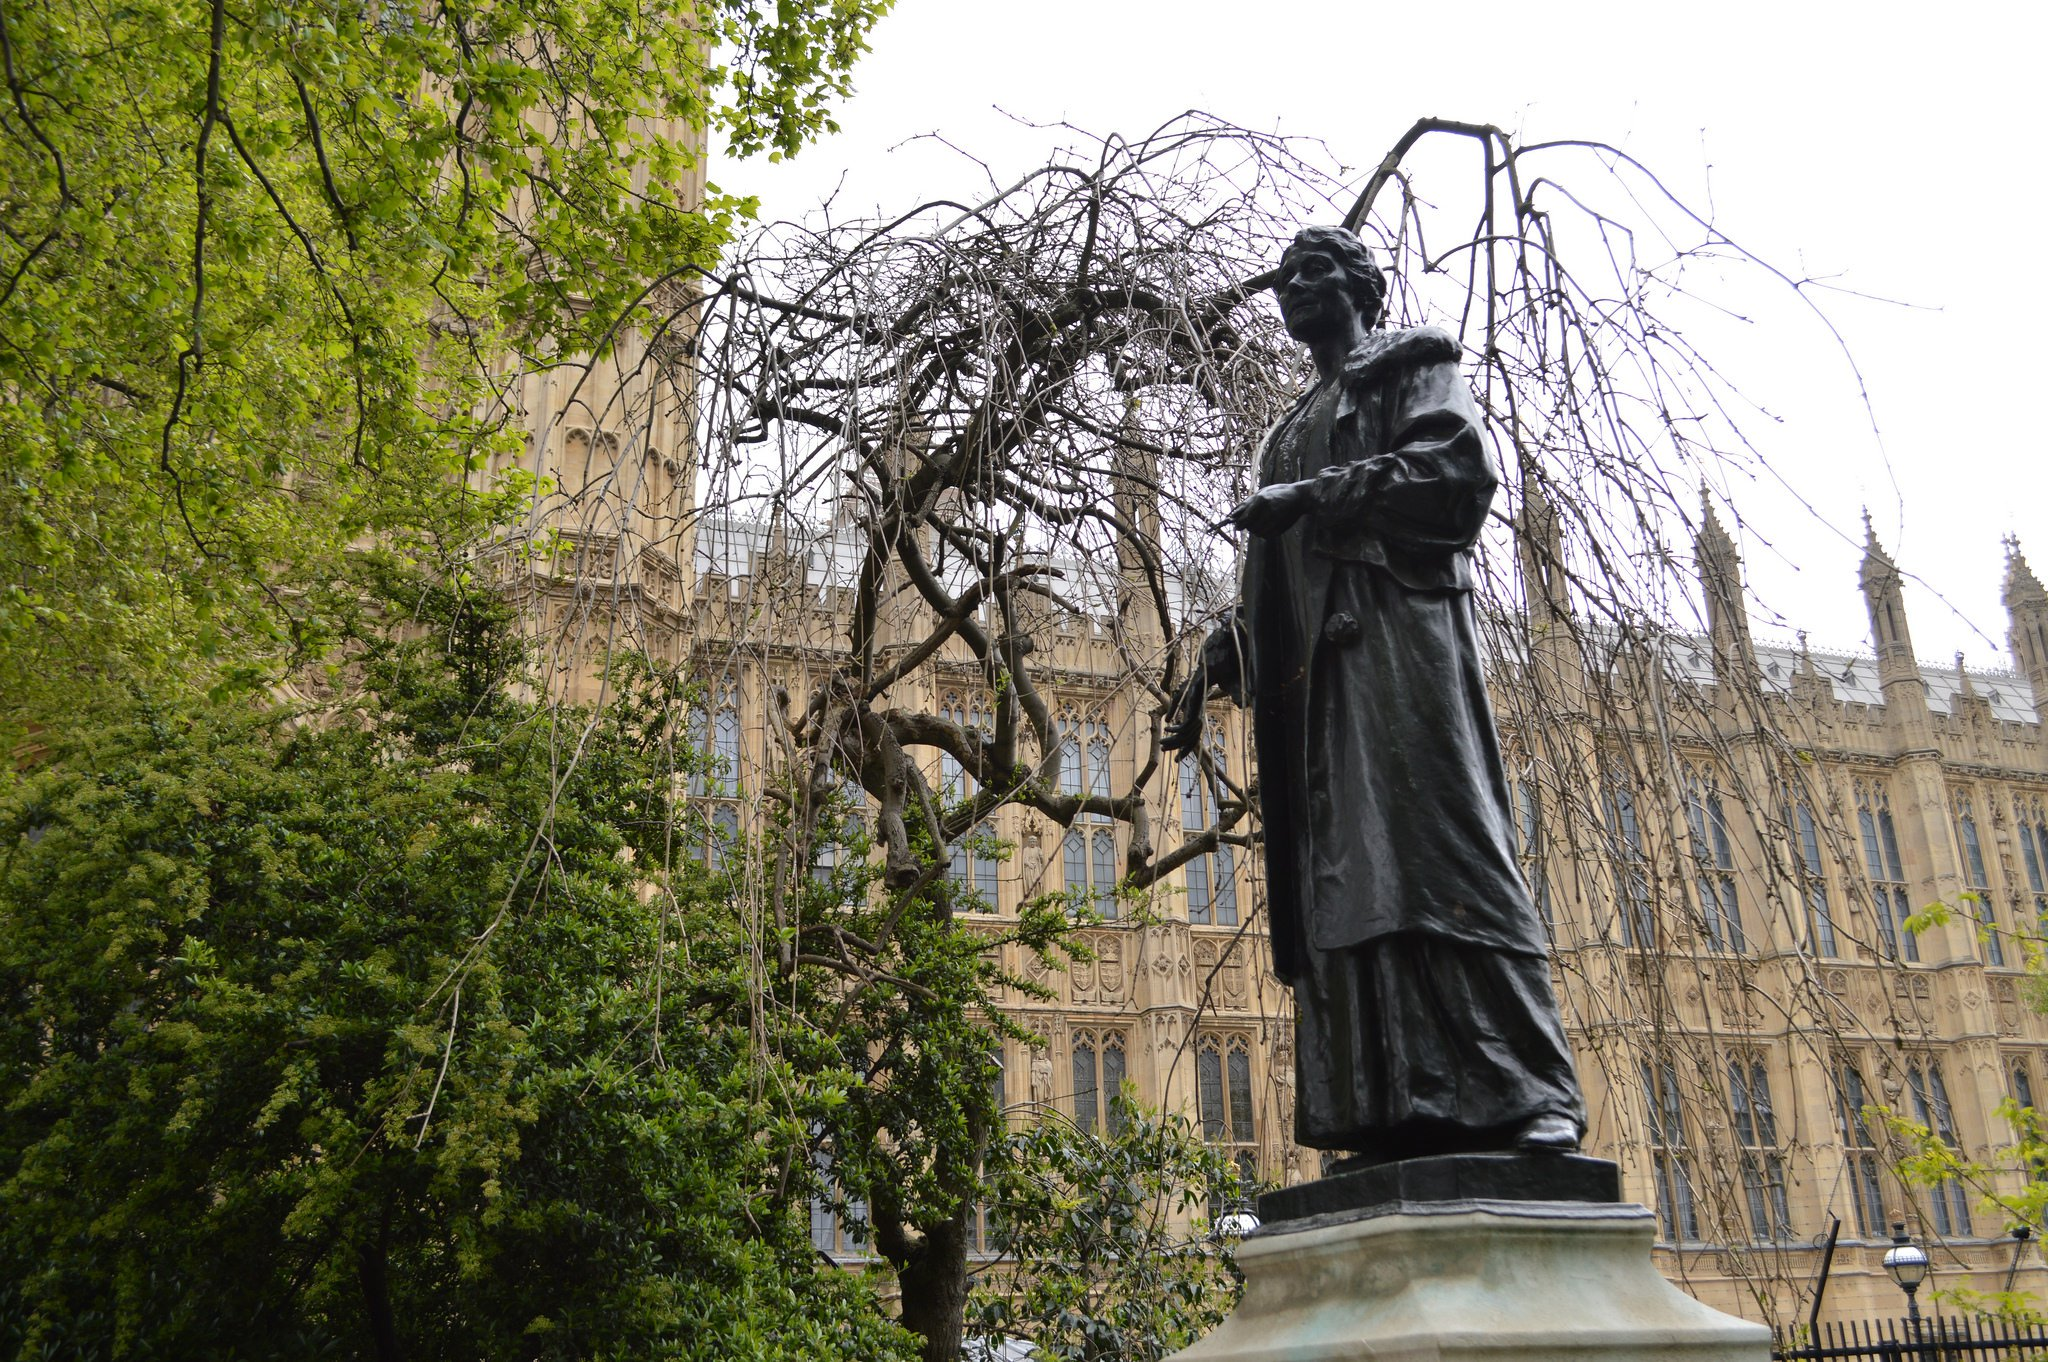 emmeline-pankhurst-statue-westminster-london-flickr